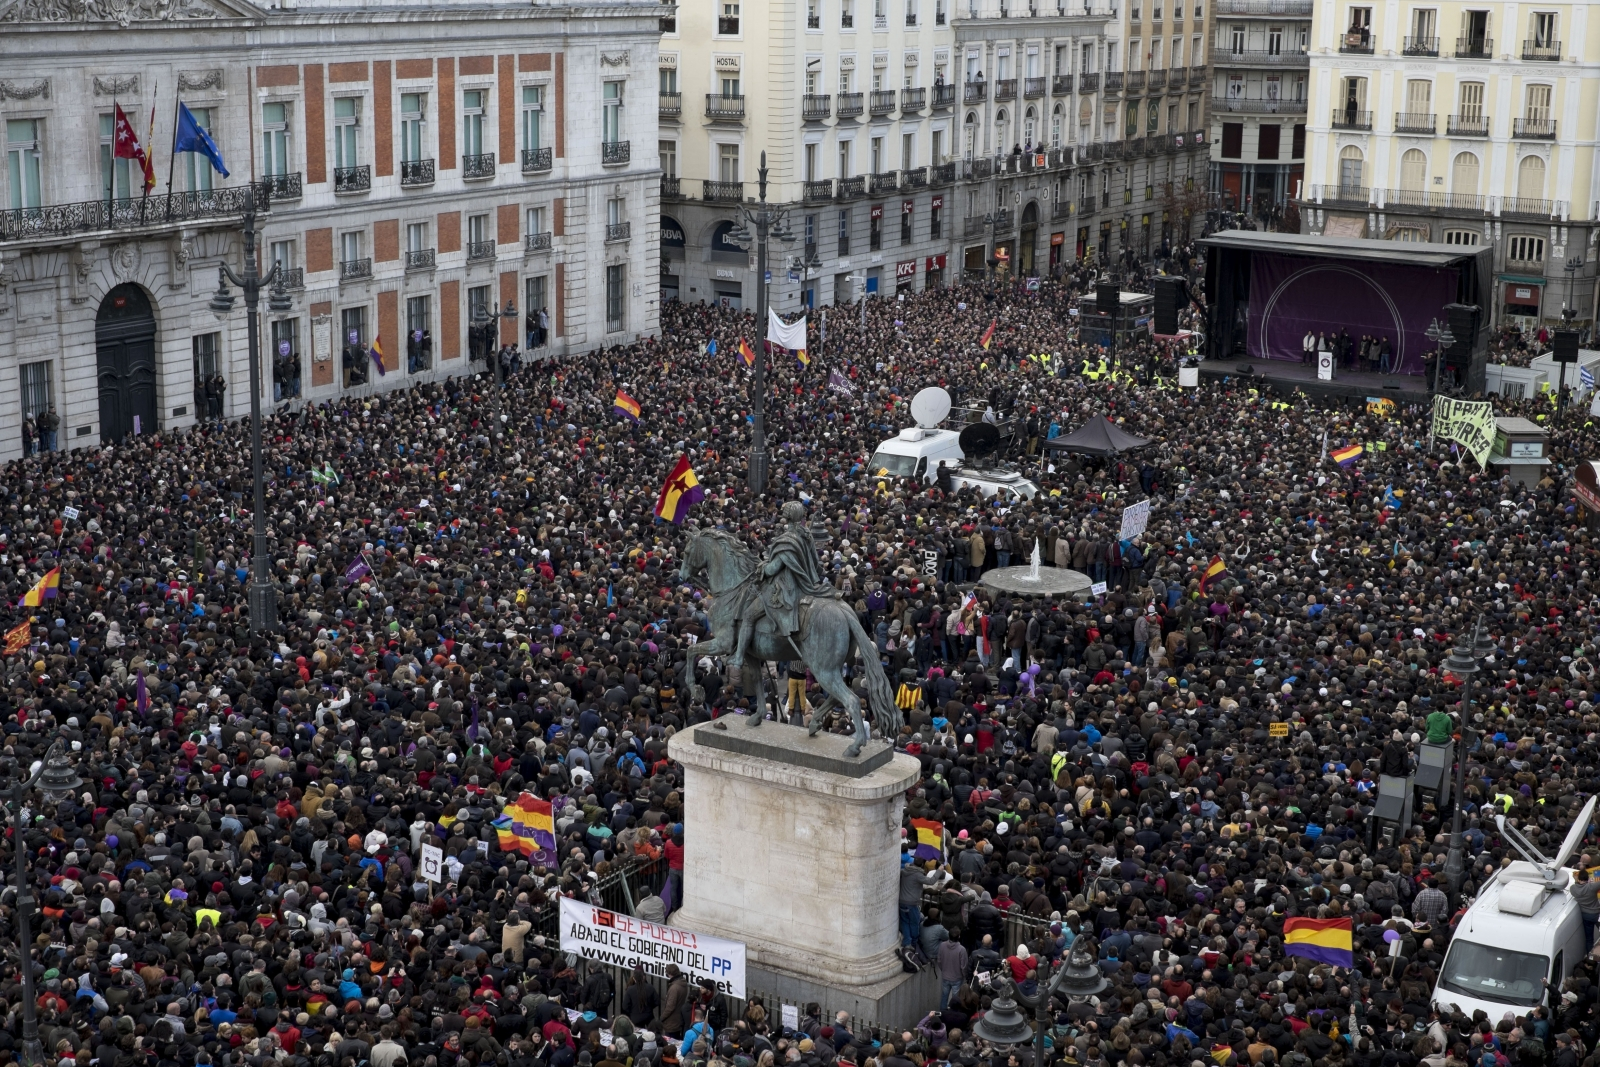 After Syriza's triumph in Greece, thousands gather in Madrid for Podemos party rally